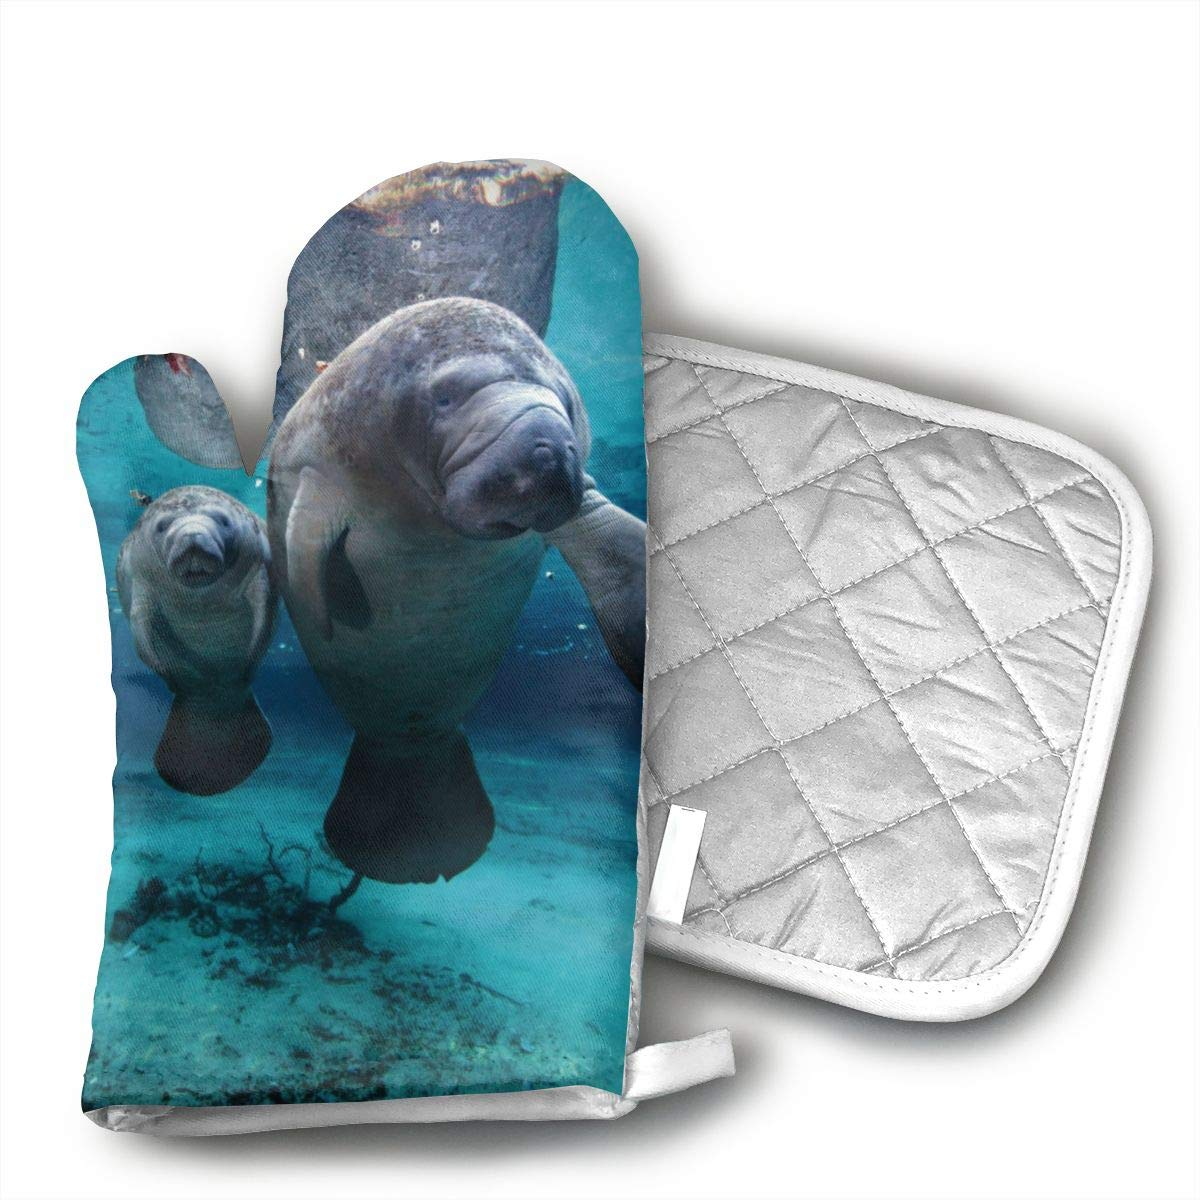 Ocen Life Under Water Sea Animal Manatee Oven Mitts and Pot Holders Kitchen Mitten Cooking Gloves,Cooking, Baking, BBQ.